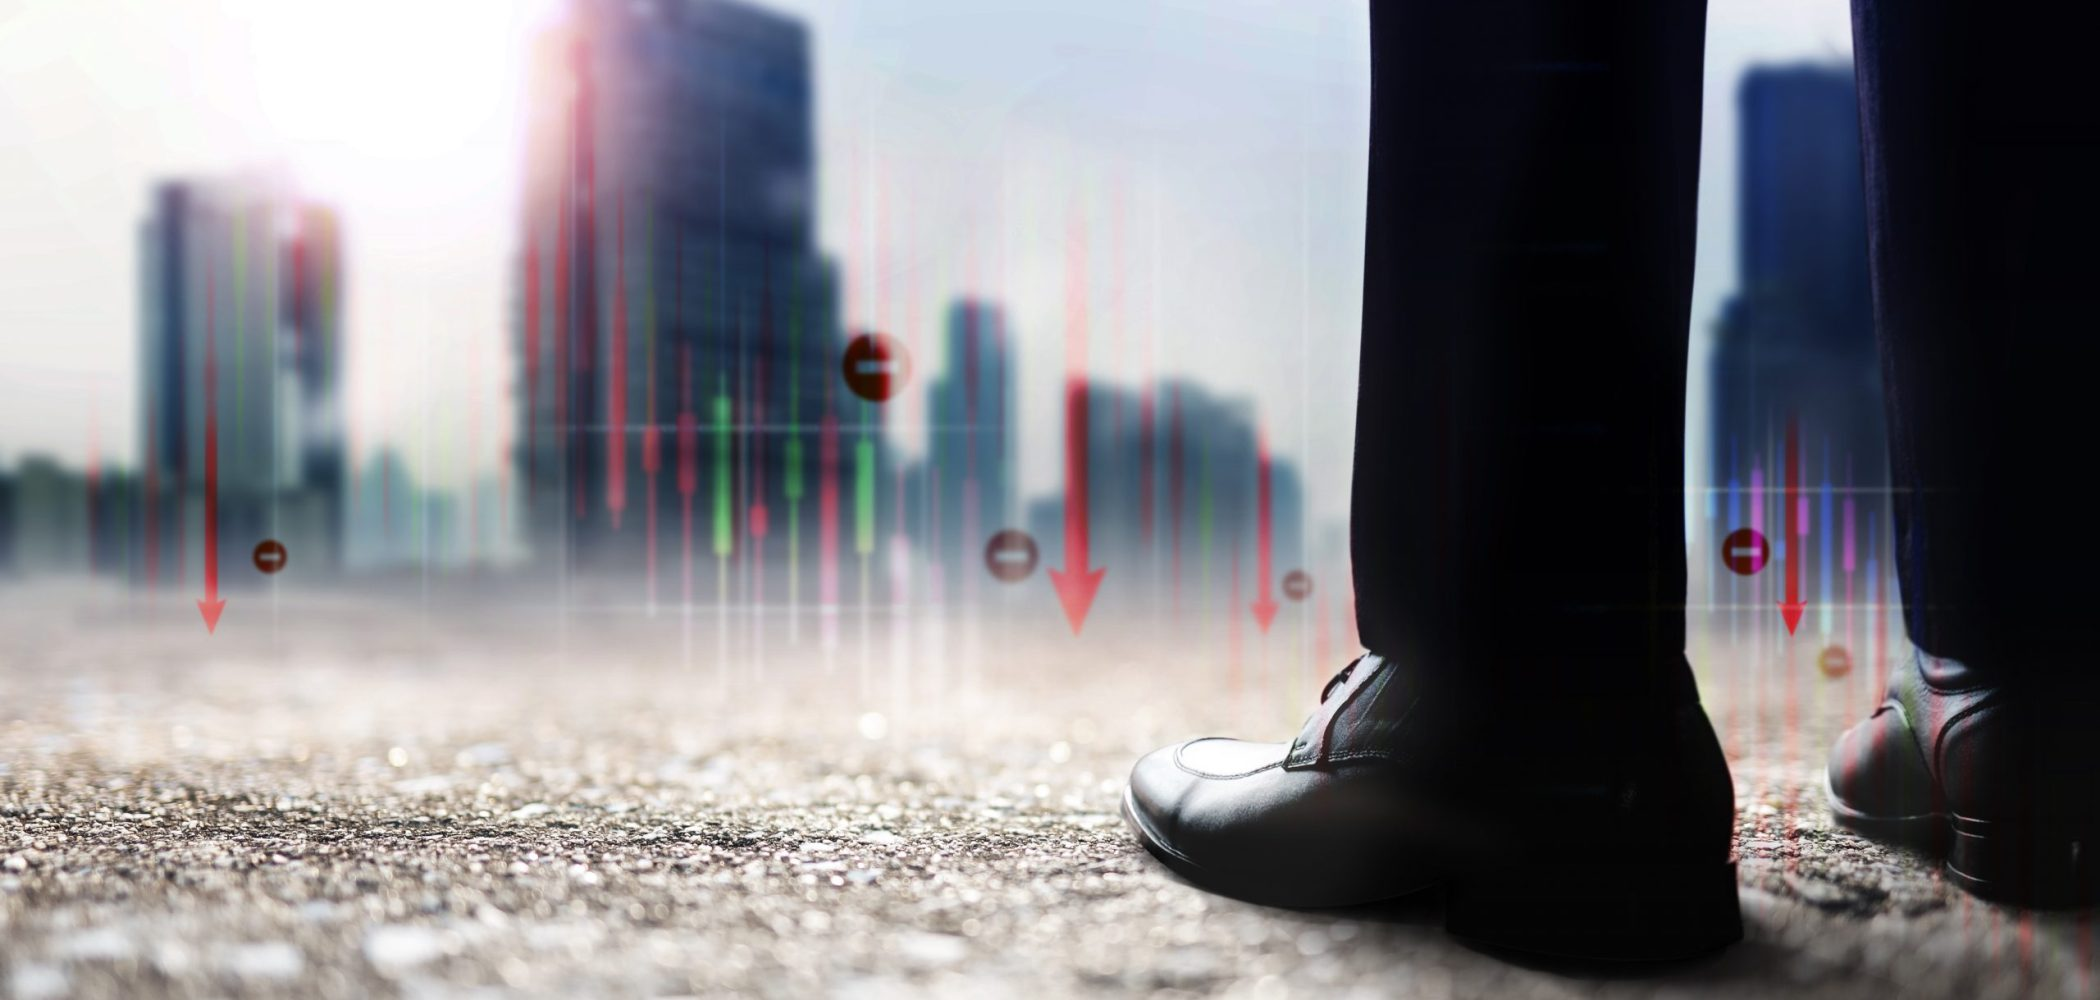 Financial or Economy Crisis Concept. Vision of Business Leader. Stock Marketing Graph is going Crash and Down. Low Section of Businessman Standing to Looking at the Urban City